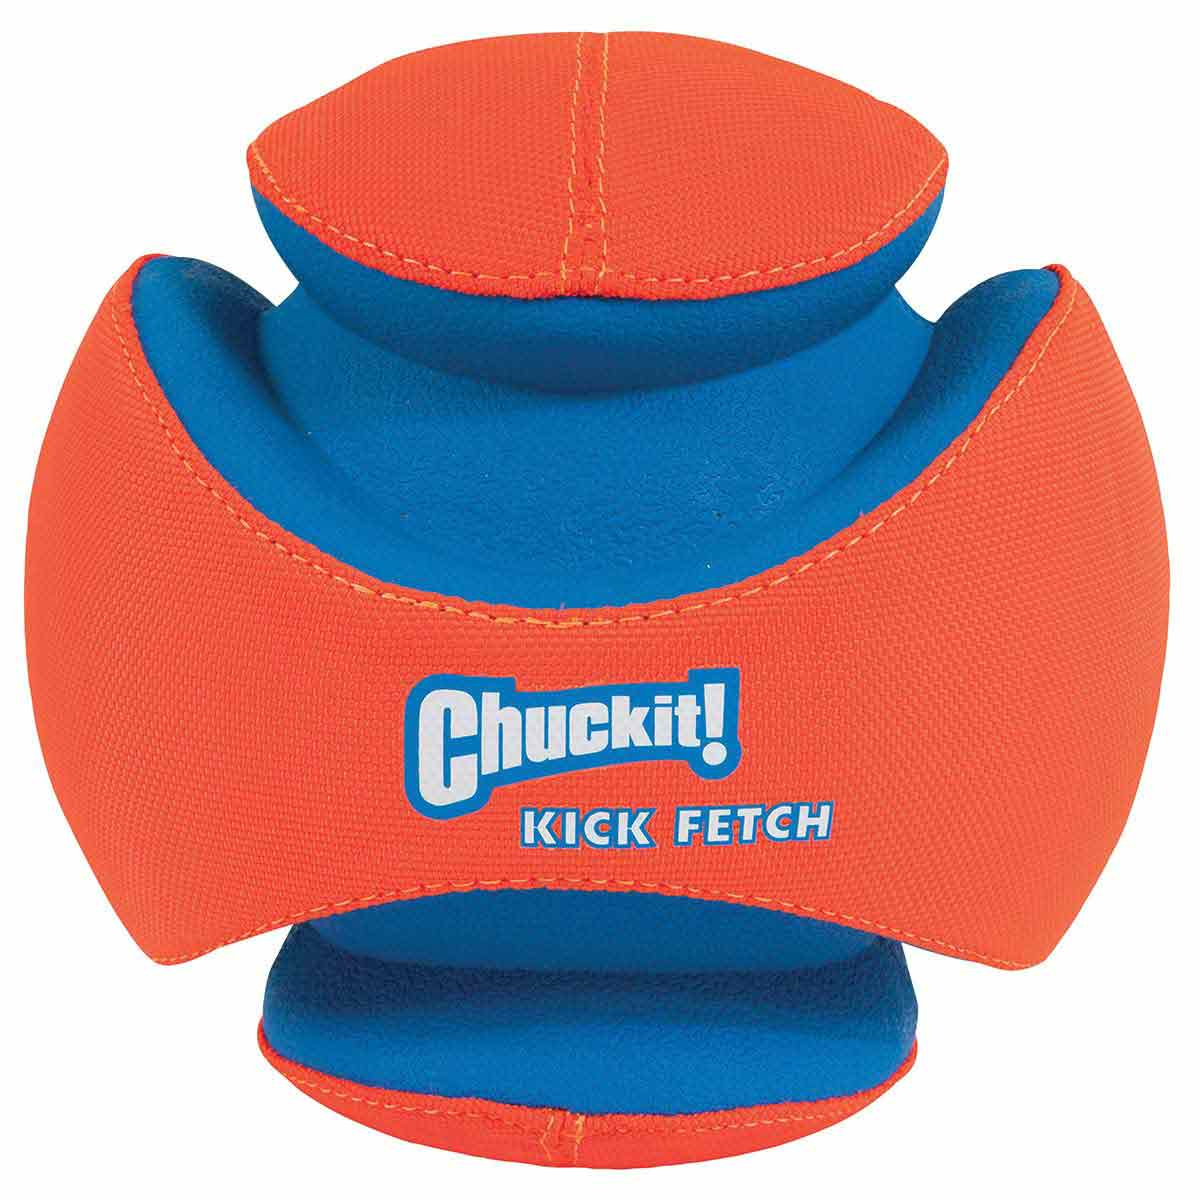 Chuckit! Kick Fetch Ball Small 6 inch - in Packaging